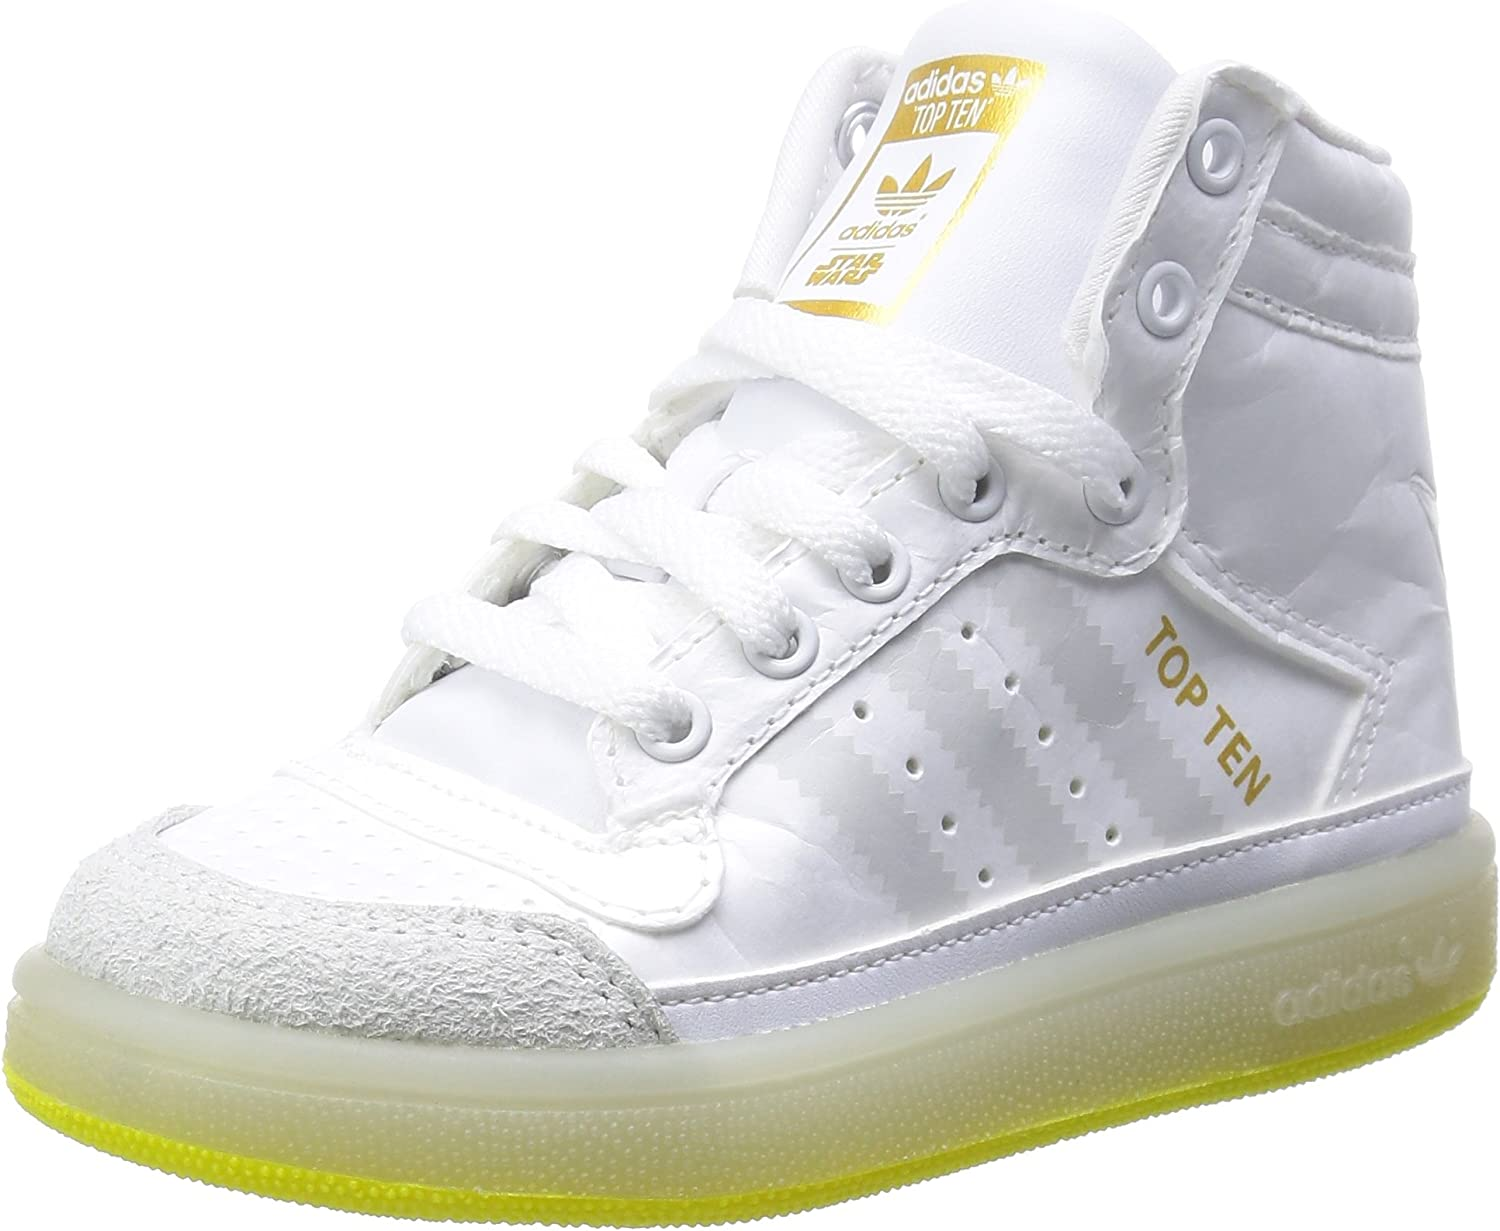 adidas Chaussure montante Top Ten Star Wars Yoda Ftwr